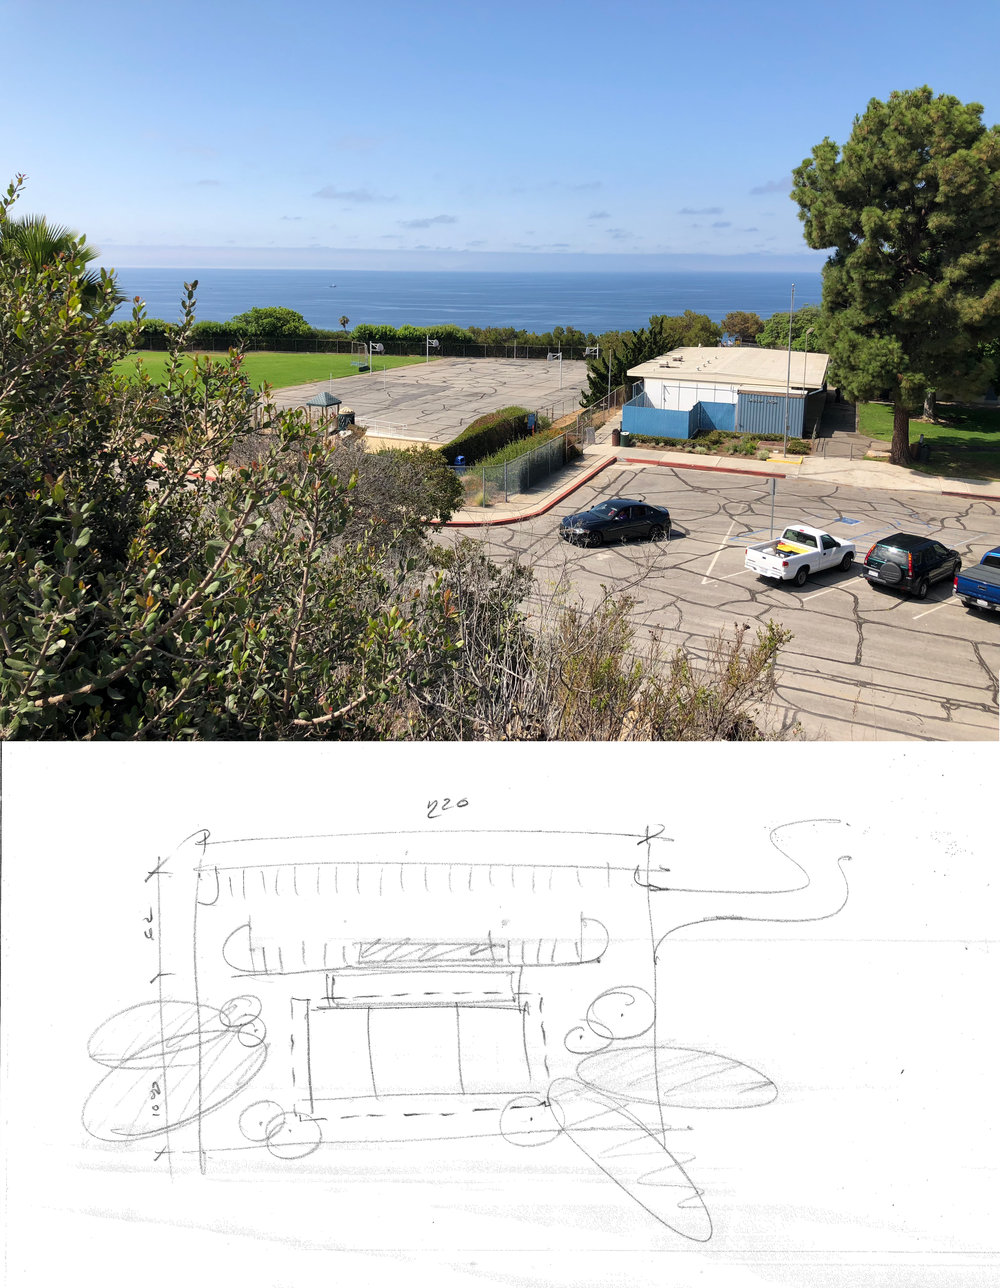 NEW PARK SITE New park will occupy a decommissioned elementary school campus overlooking the Pacific Ocean.      PRELIMINARY THOUGHTS Initial sketch of community center layout within the new park.